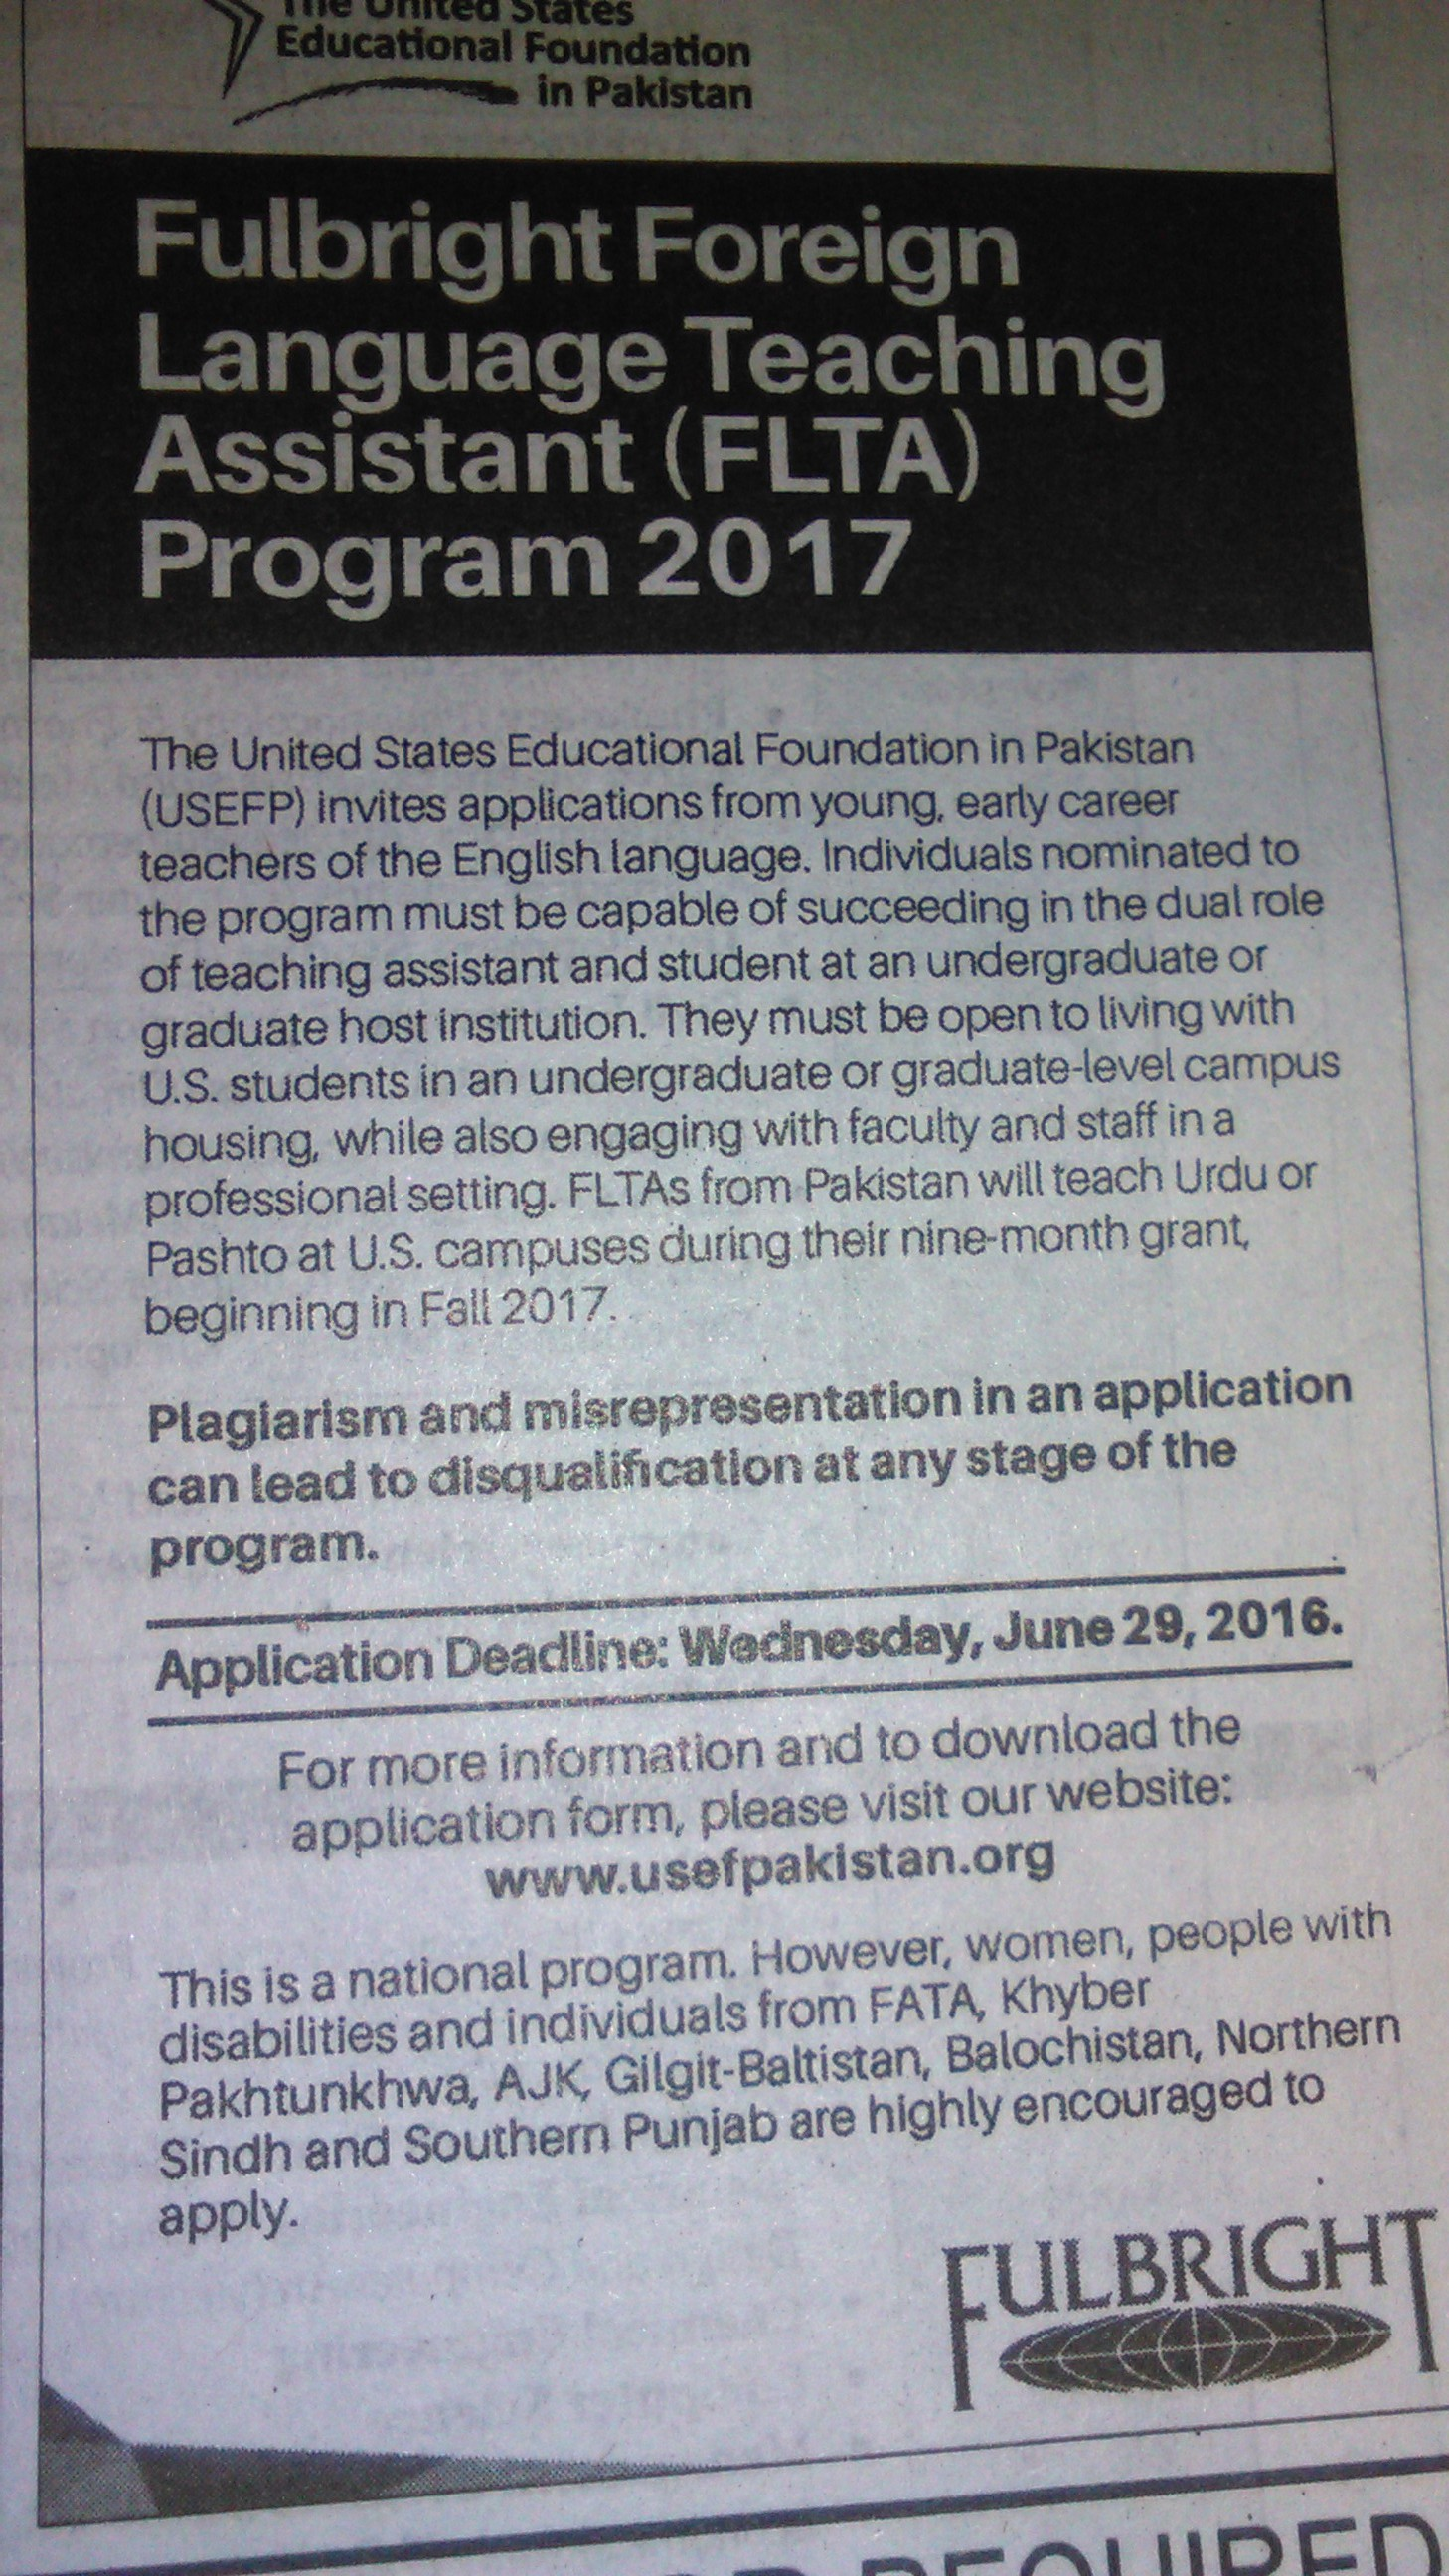 Fullbright Foreign Language Teaching Assistant Program